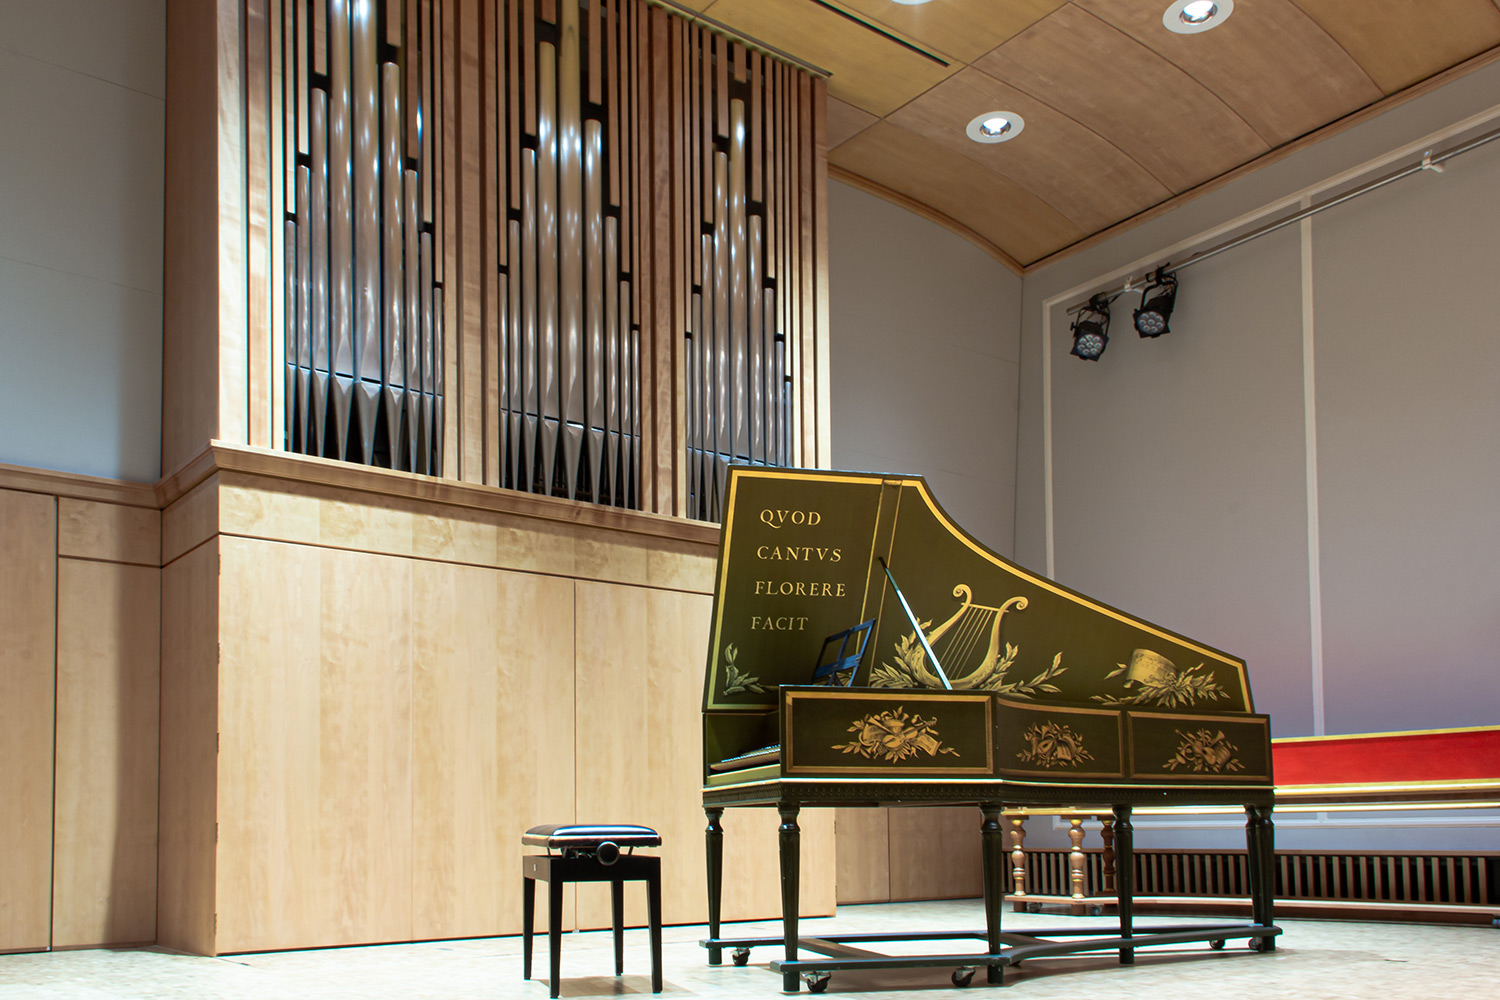 WSDG were retained to improve the hall's sound isolation and A/V components of the Basel Music Academy, and conserving their acoustic signature. Piano.